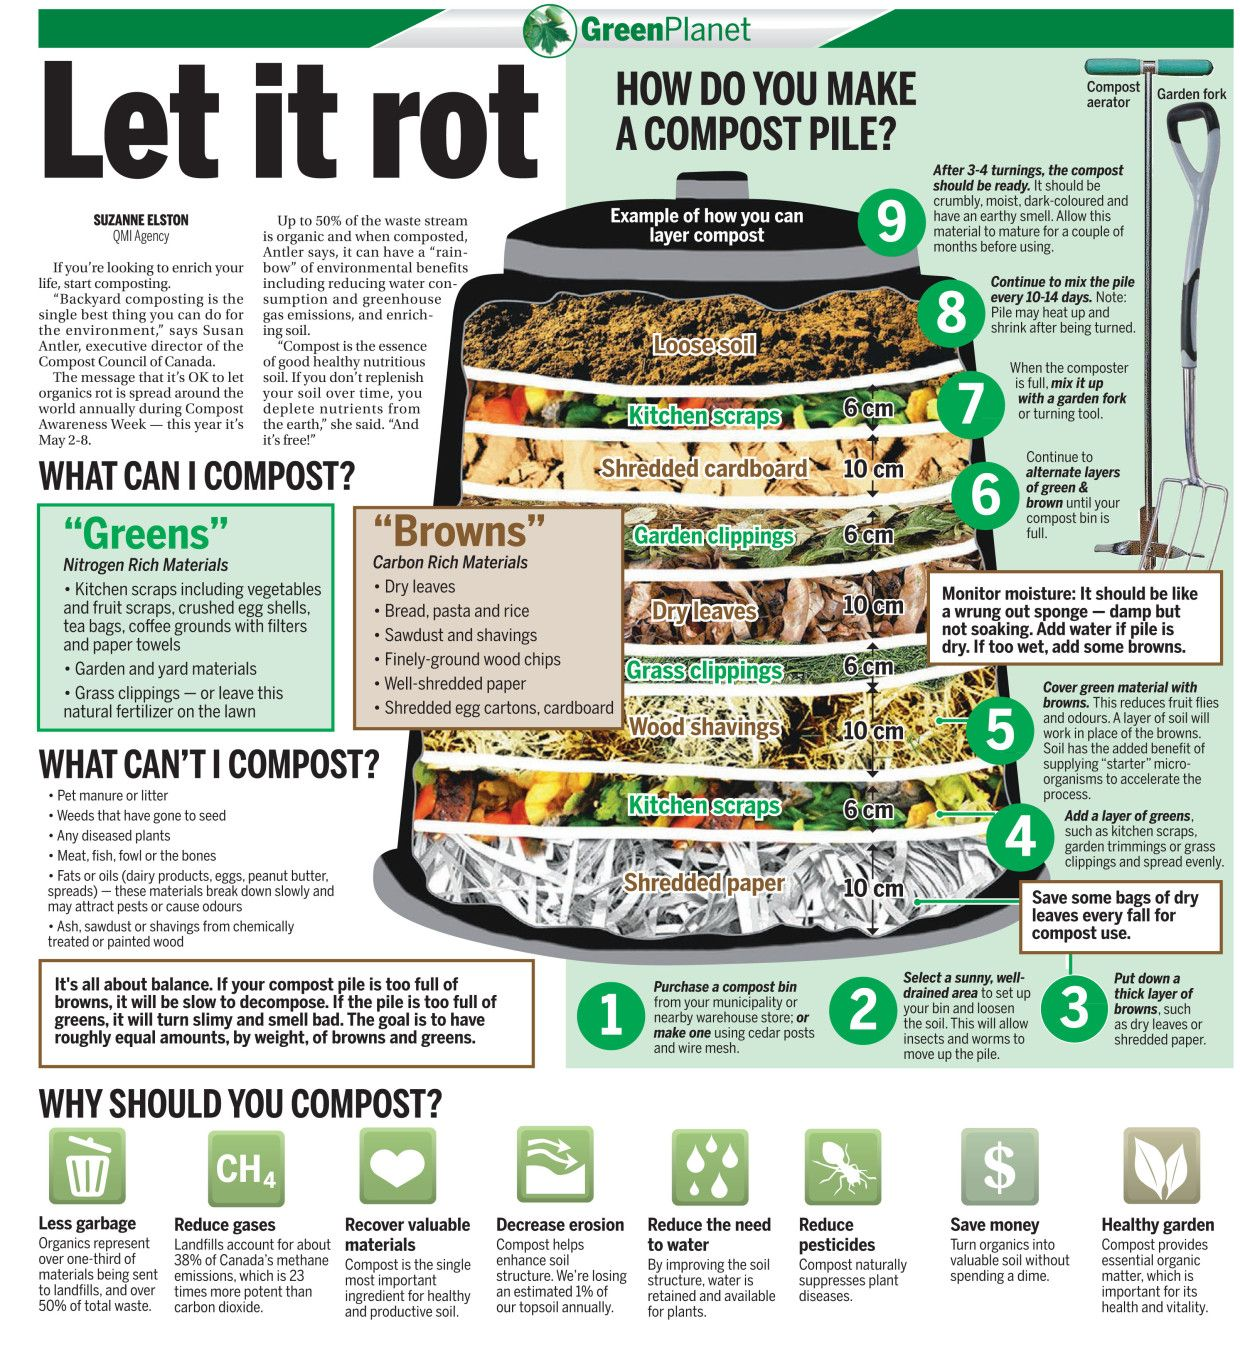 Let It Rot: How Do You Make A Compost Pile?